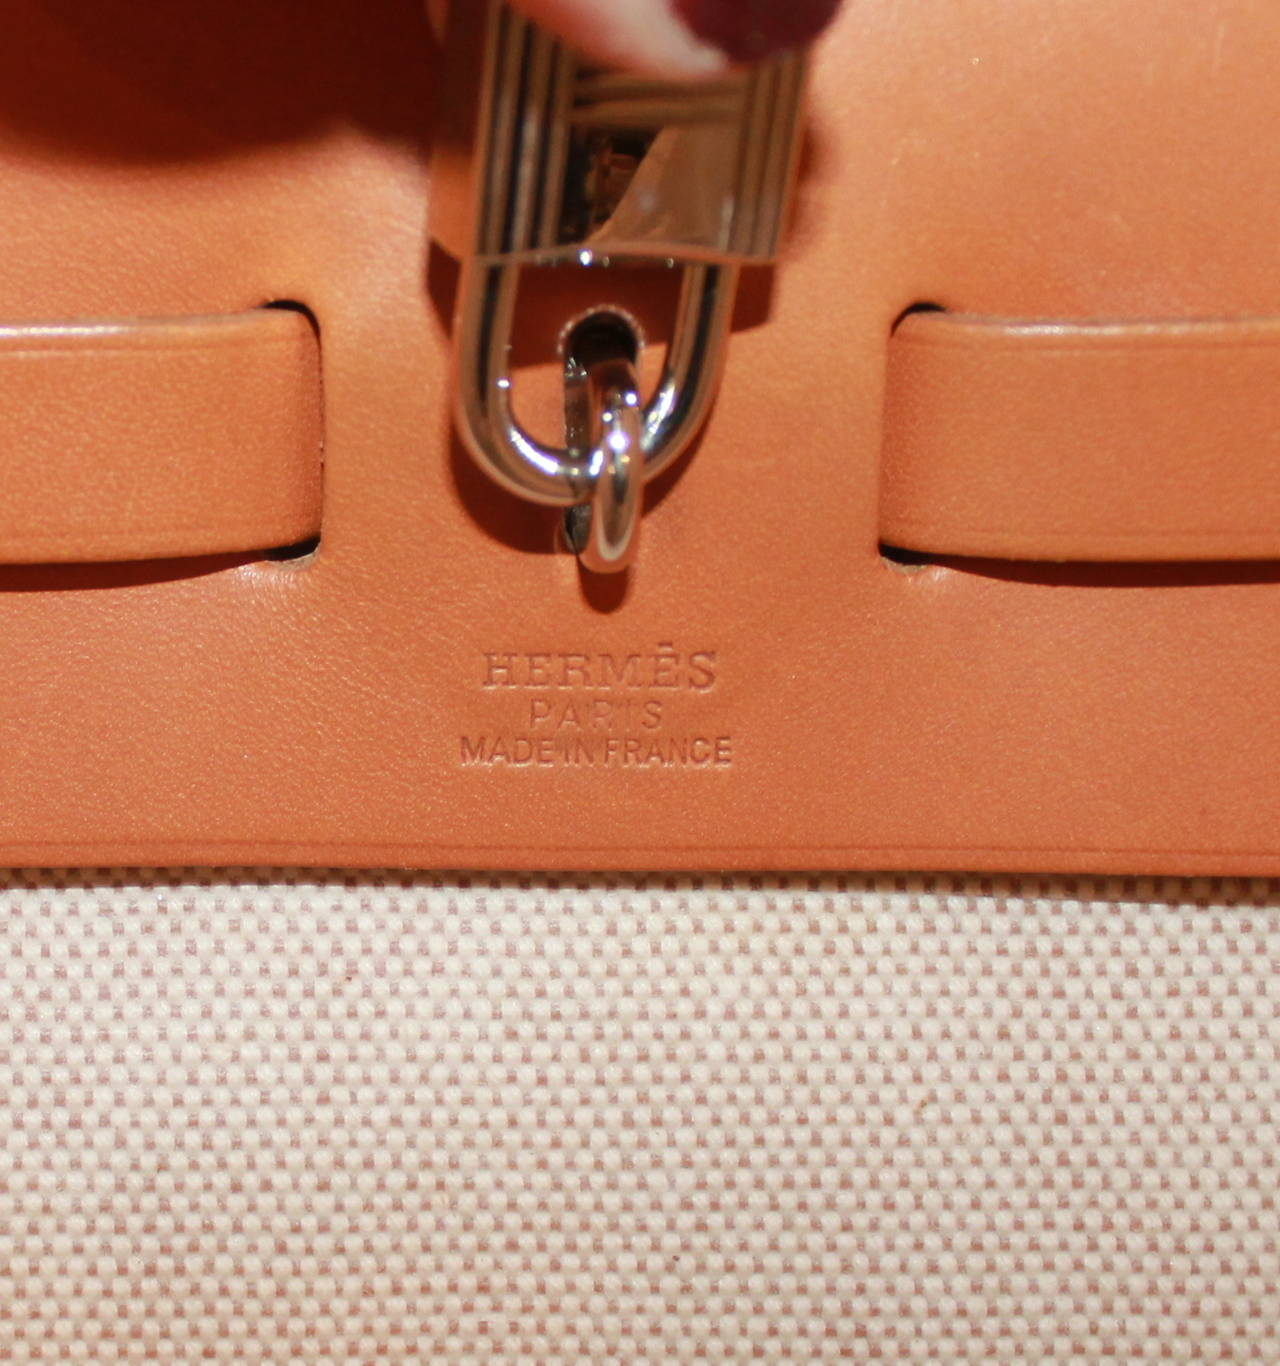 Hermes Gold Leather Tan and Black Canvas \u0026quot;Her\u0026quot; Bag 31 cm at 1stdibs